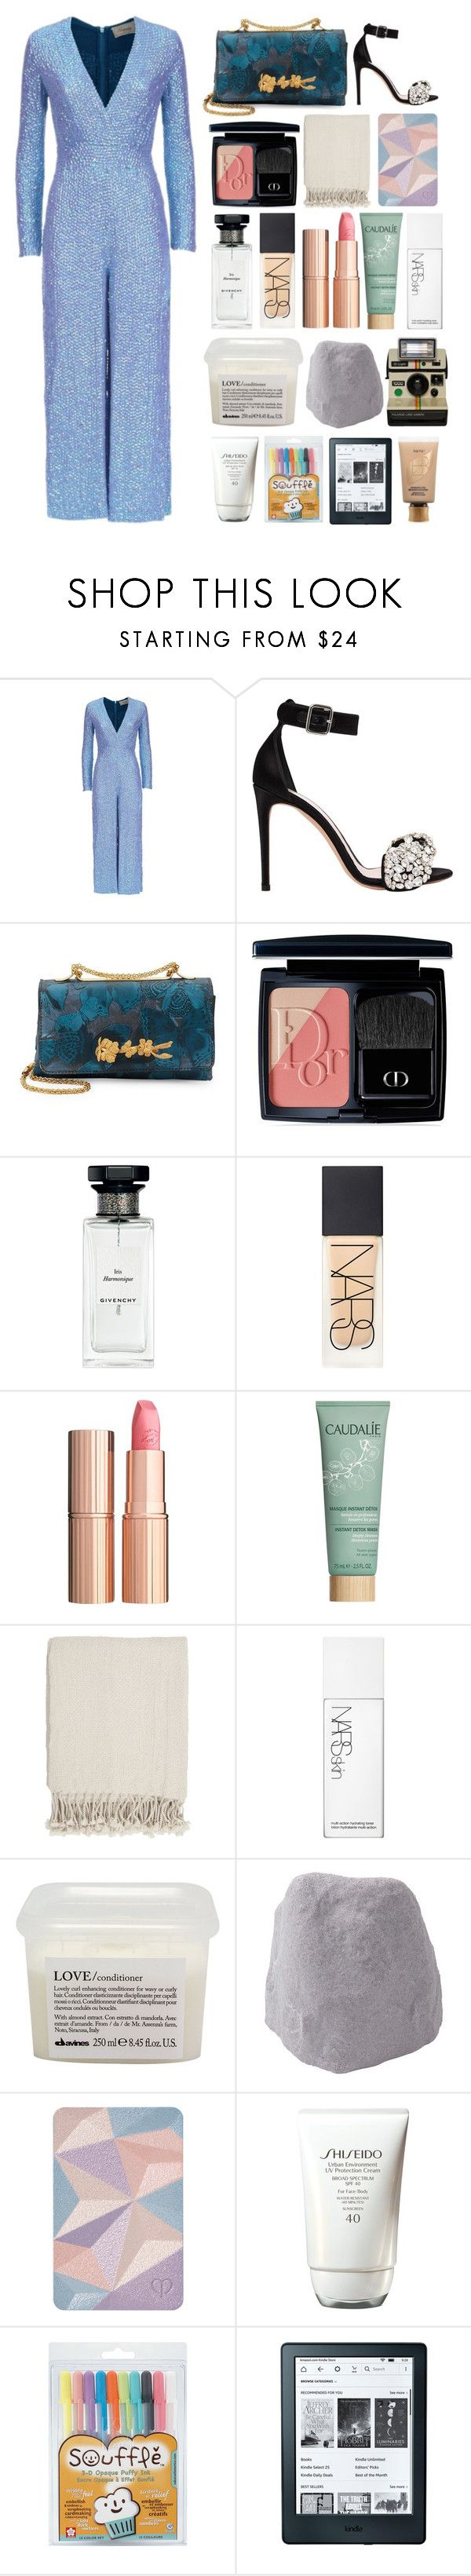 """""""6.318"""" by katrinattack ❤ liked on Polyvore featuring Temperley London, Alexander McQueen, Valentino, Christian Dior, Givenchy, NARS Cosmetics, Charlotte Tilbury, Caudalíe, Surya and Davines"""